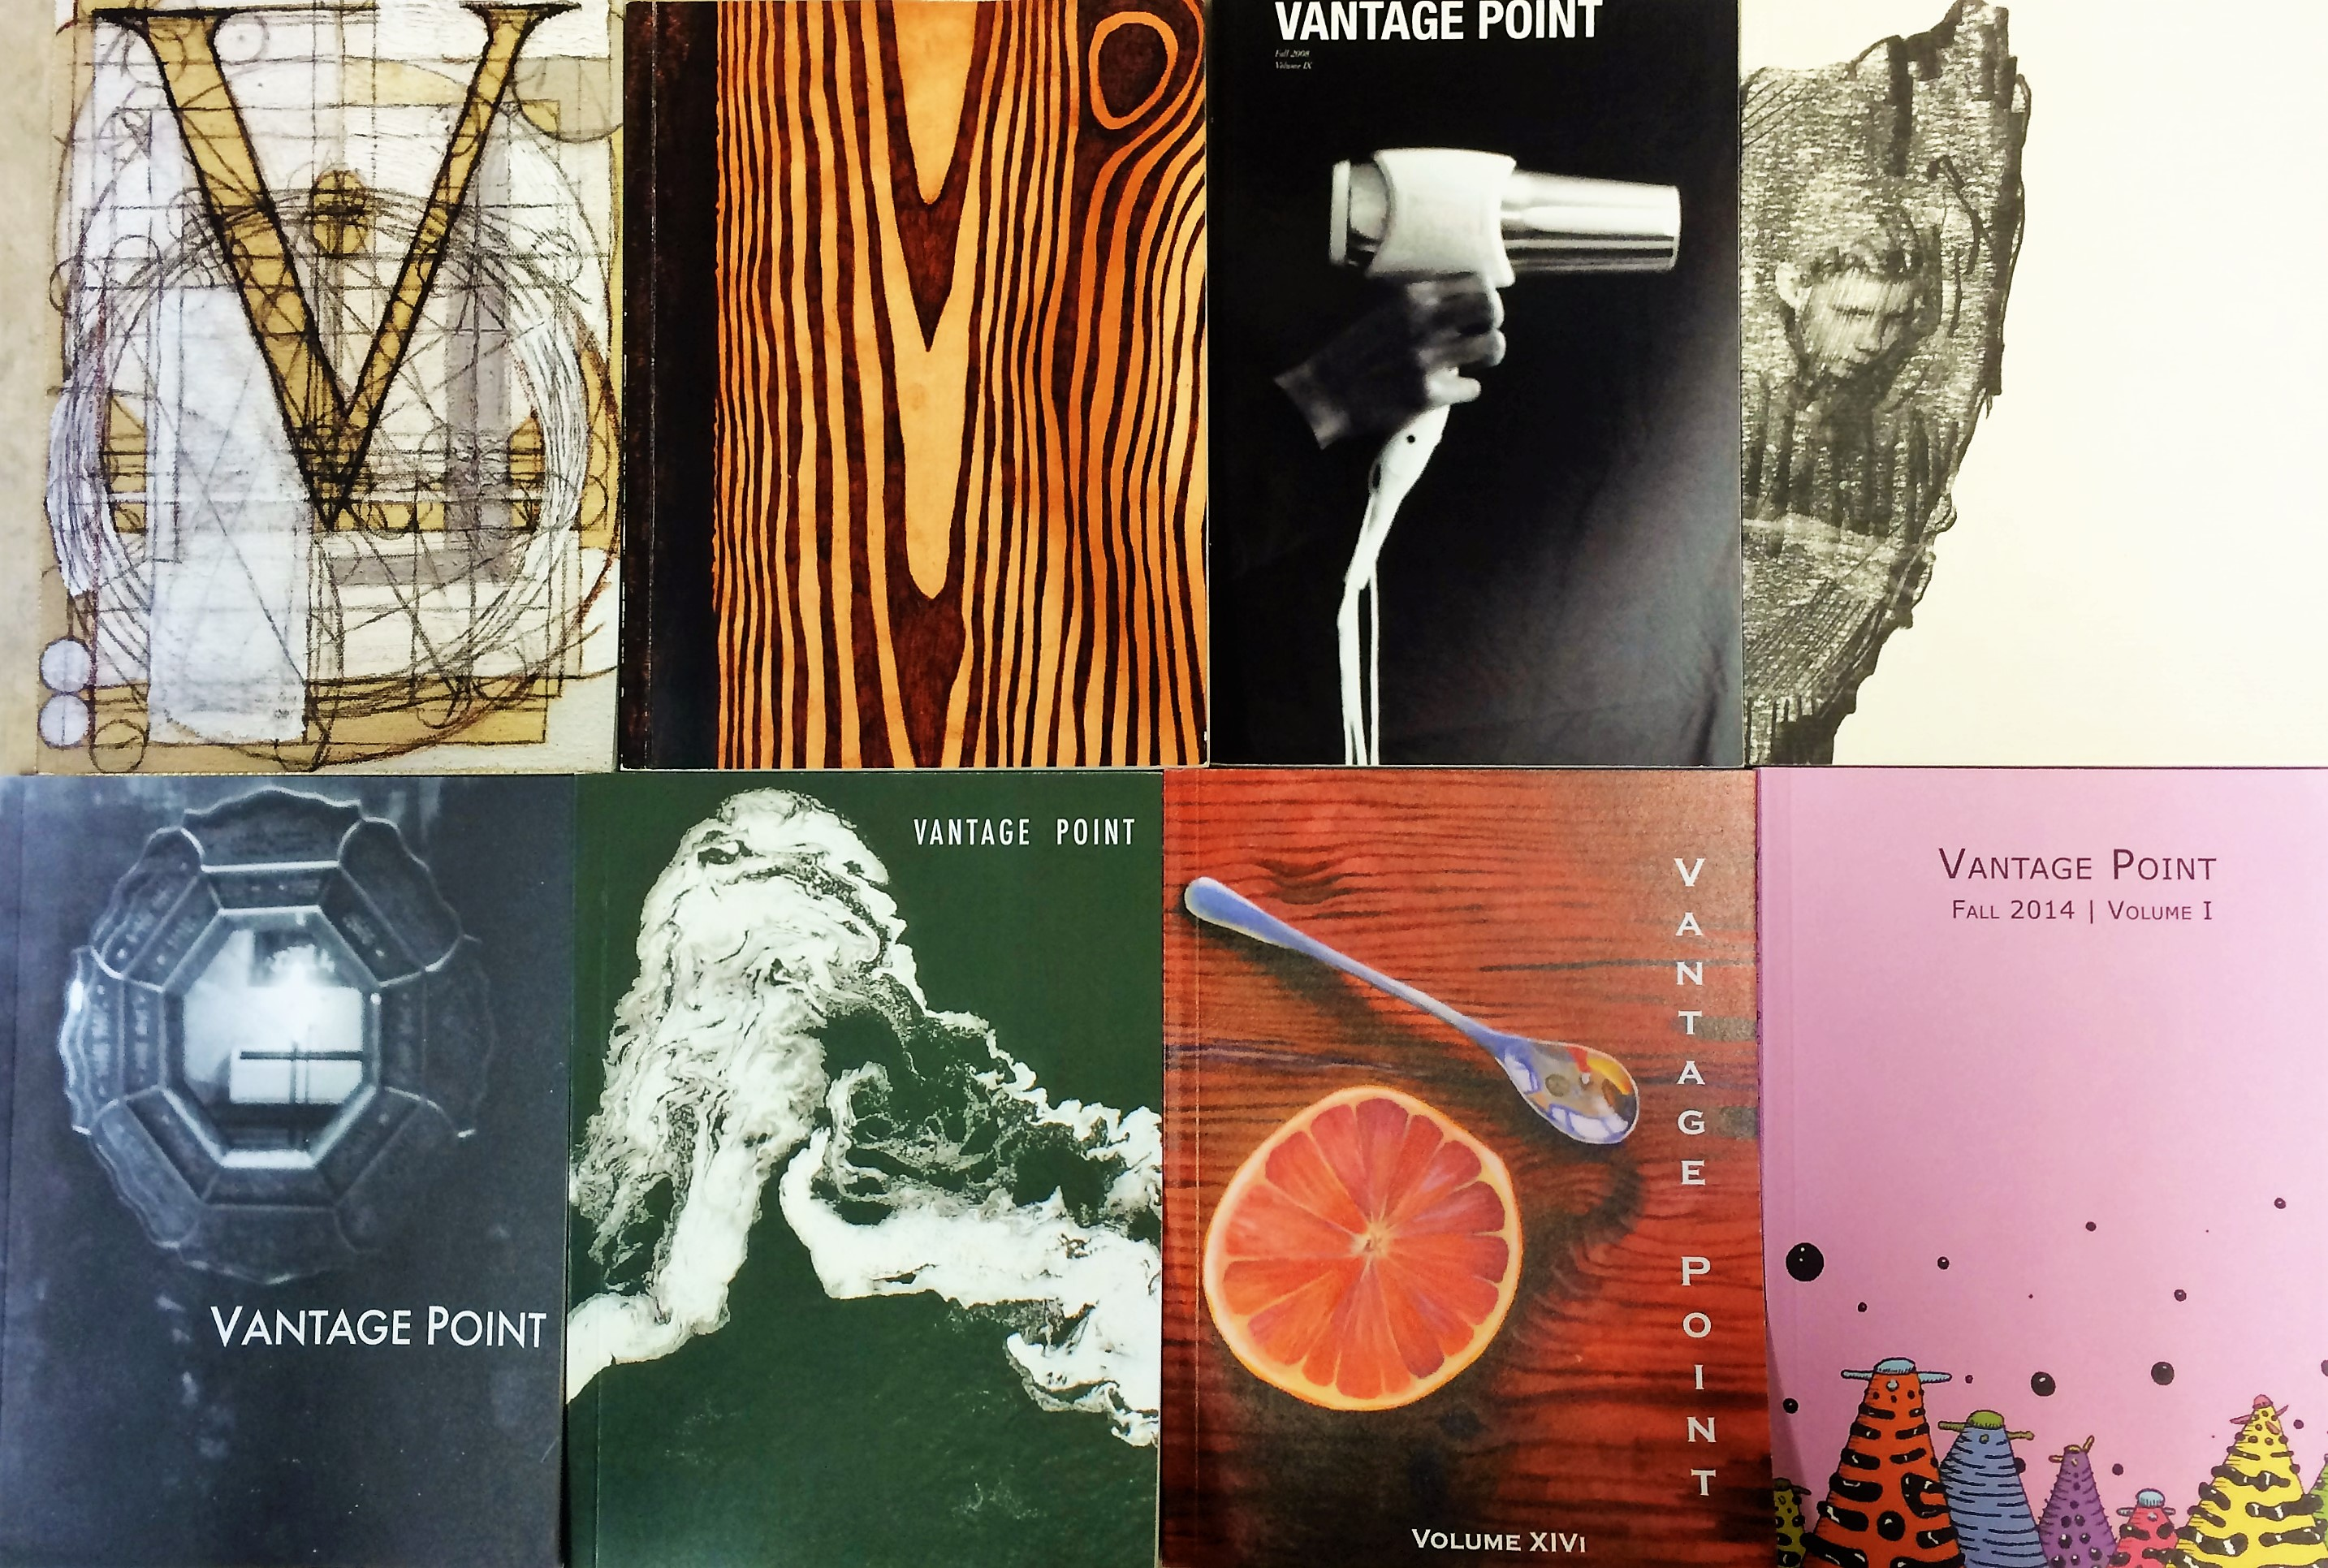 Collection of Vantage Point magazine covers from recent years.